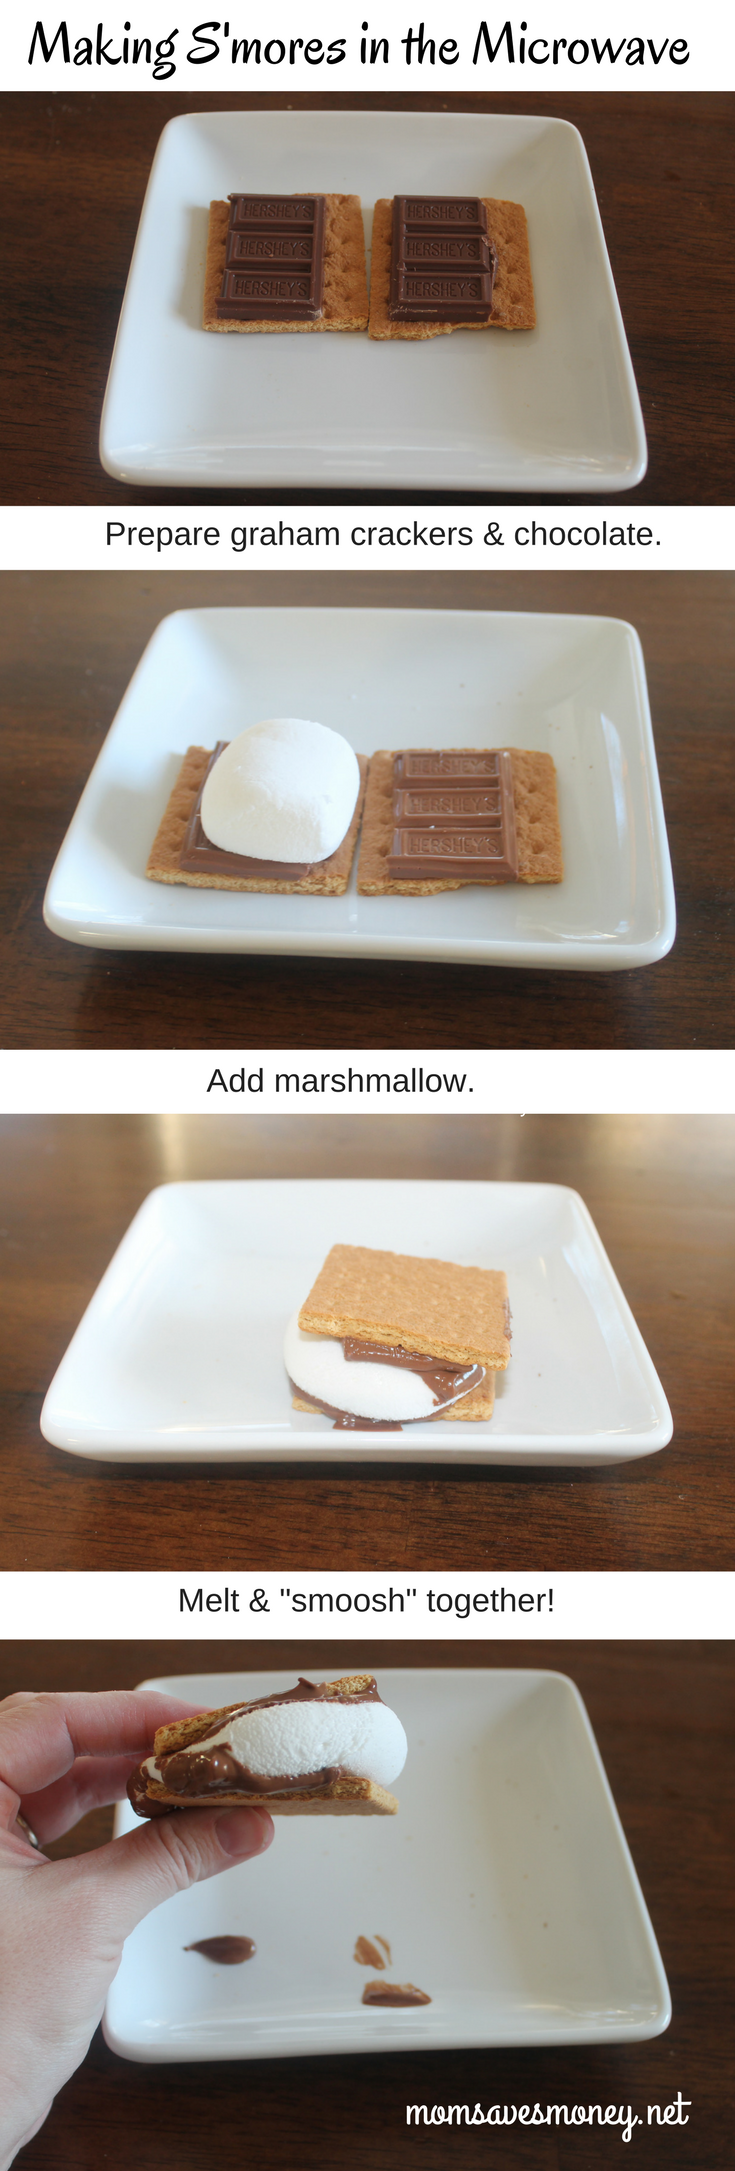 how to make s mores in the microwave